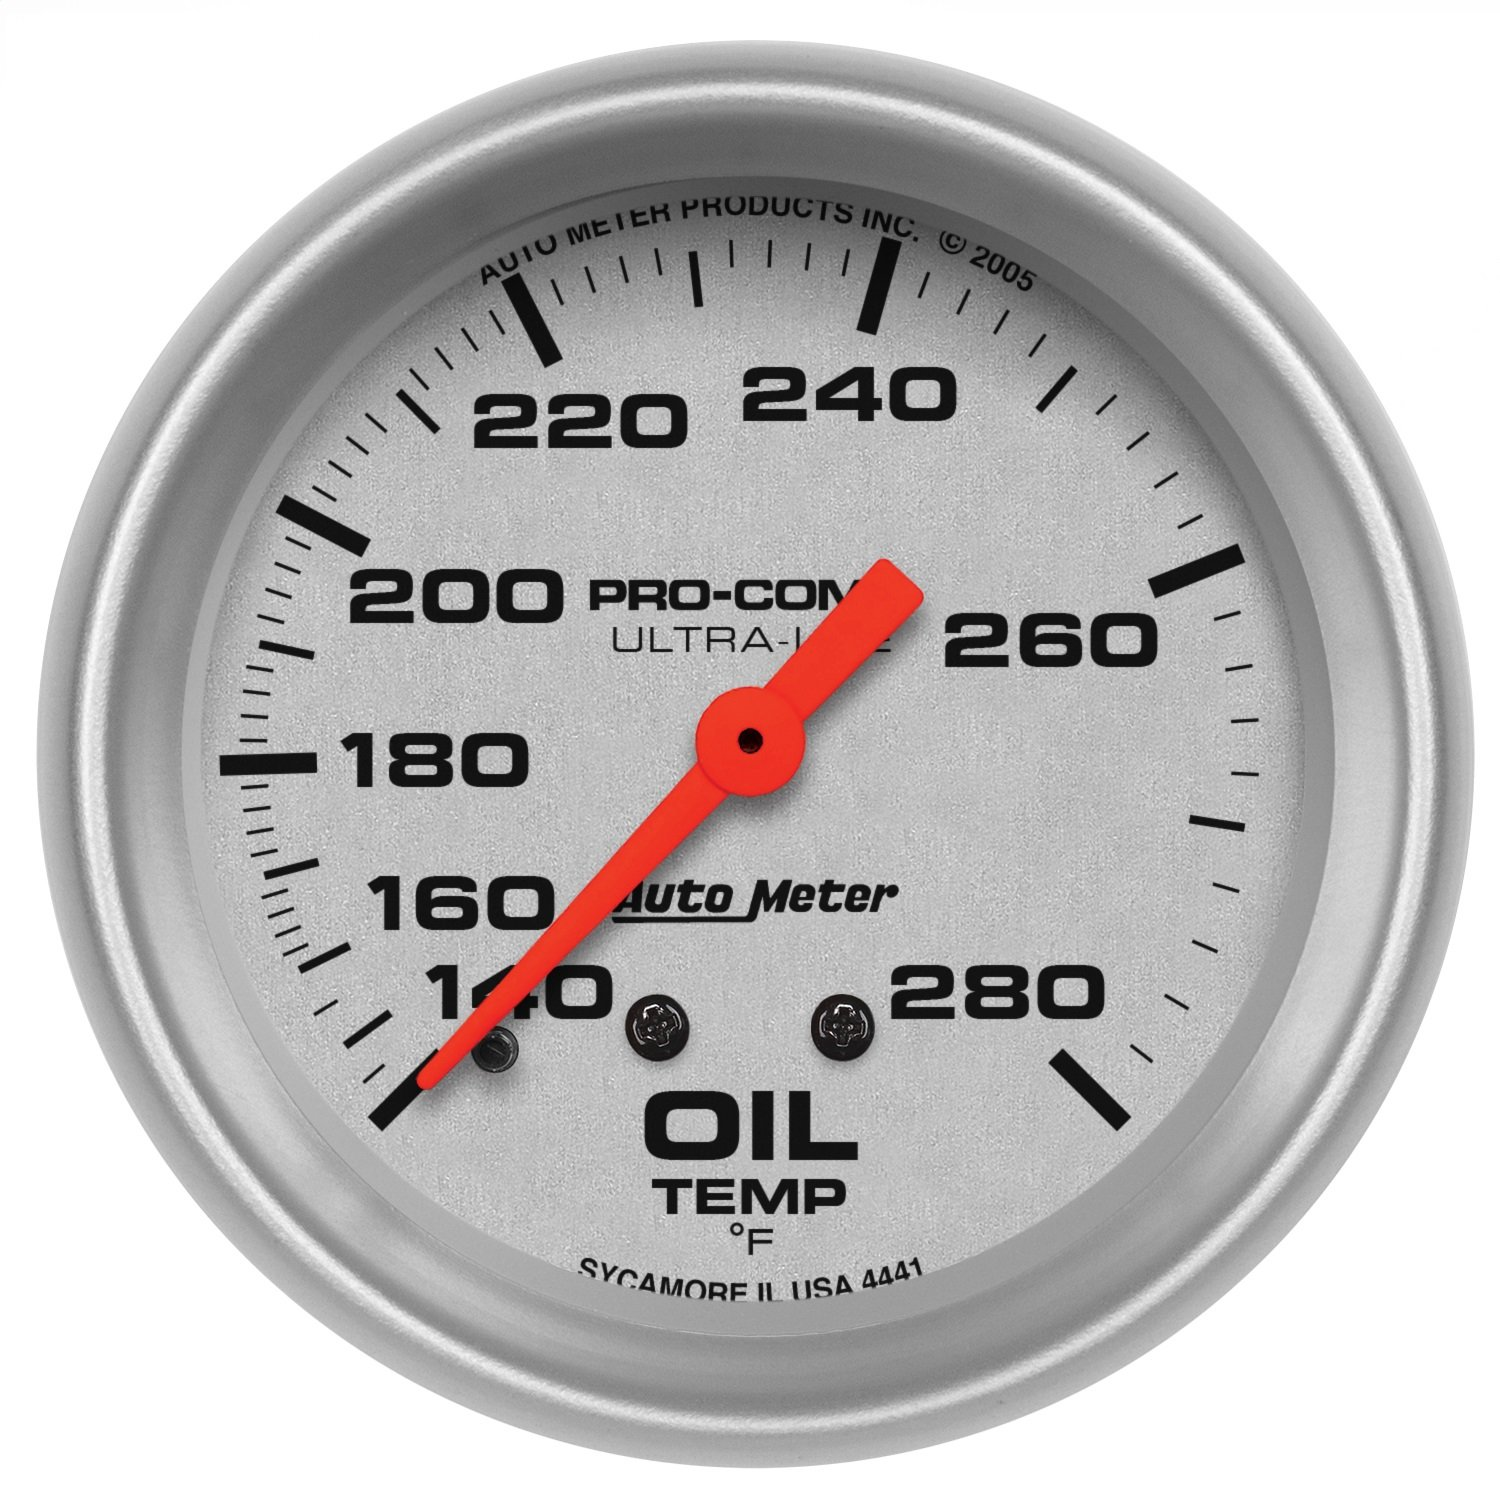 Auto Meter 4441 Ultra-Lite Mechanical Oil Temperature Gauge by Auto Meter